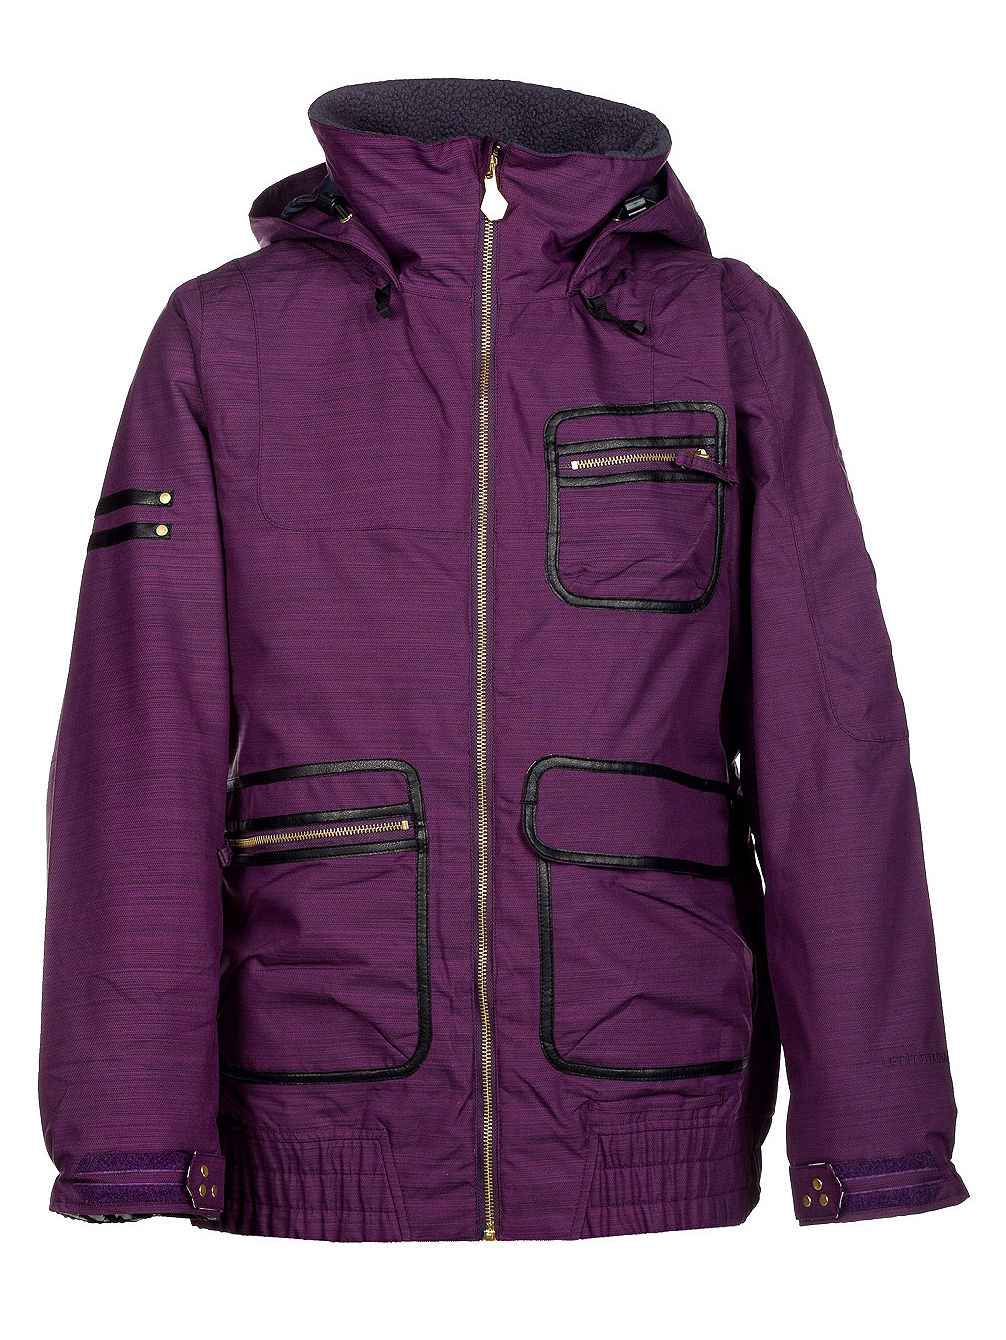 Cinema Insulated Jacket Women